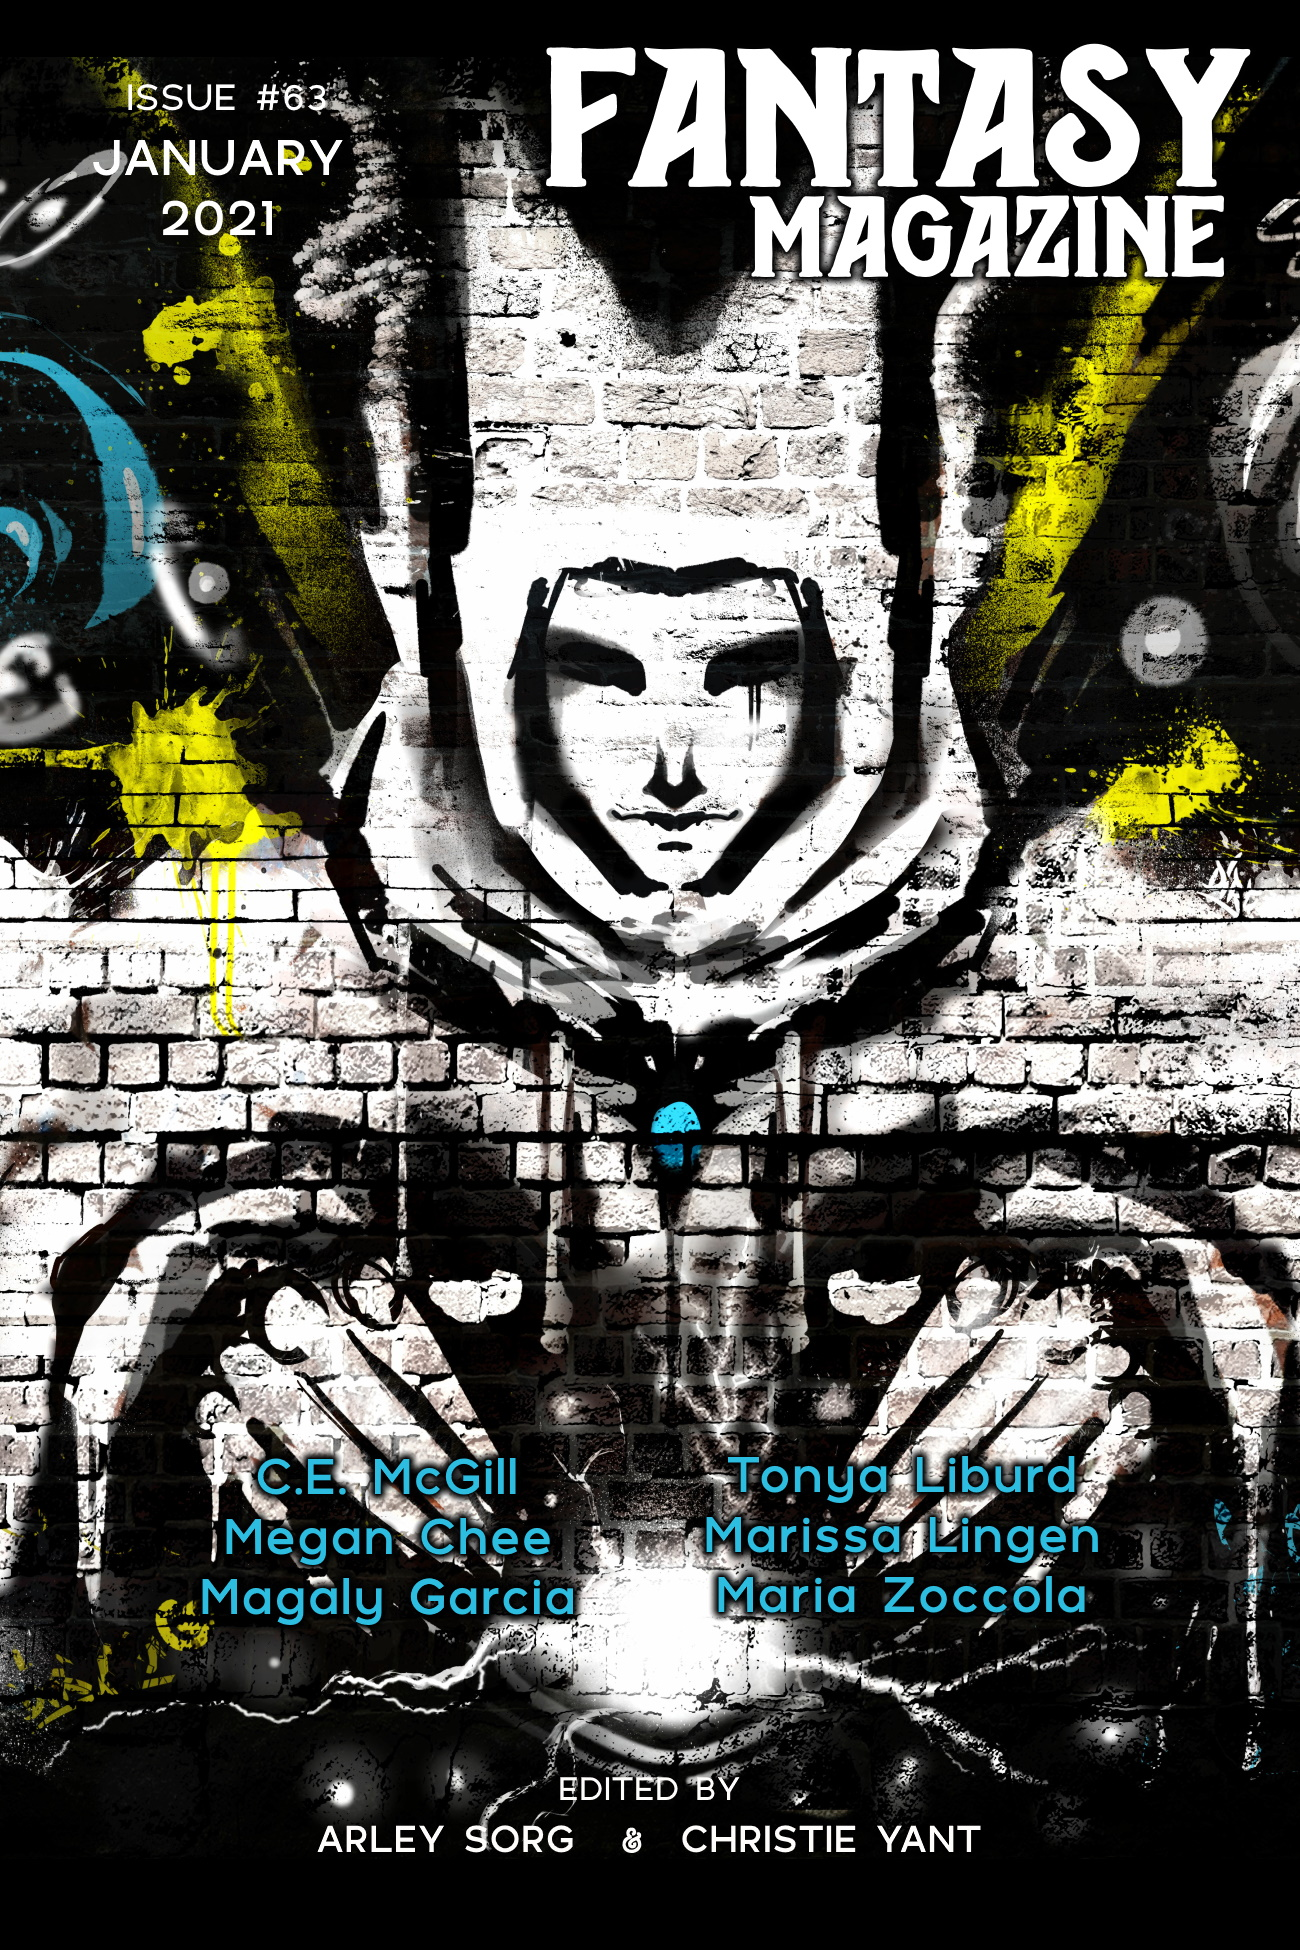 Image description: a picture of the cover image of issue #63 of Fantasy Magazine, which depicts a robed wizard-like figure drawn in a graffiti art style as well as the text: C. E. McGill, Tonya Liburd, Megan Chee, Marissa Lingen, Magaly Garcia, and Maria Zoccola. Edited by Arley Song and Christie Yant. /end description